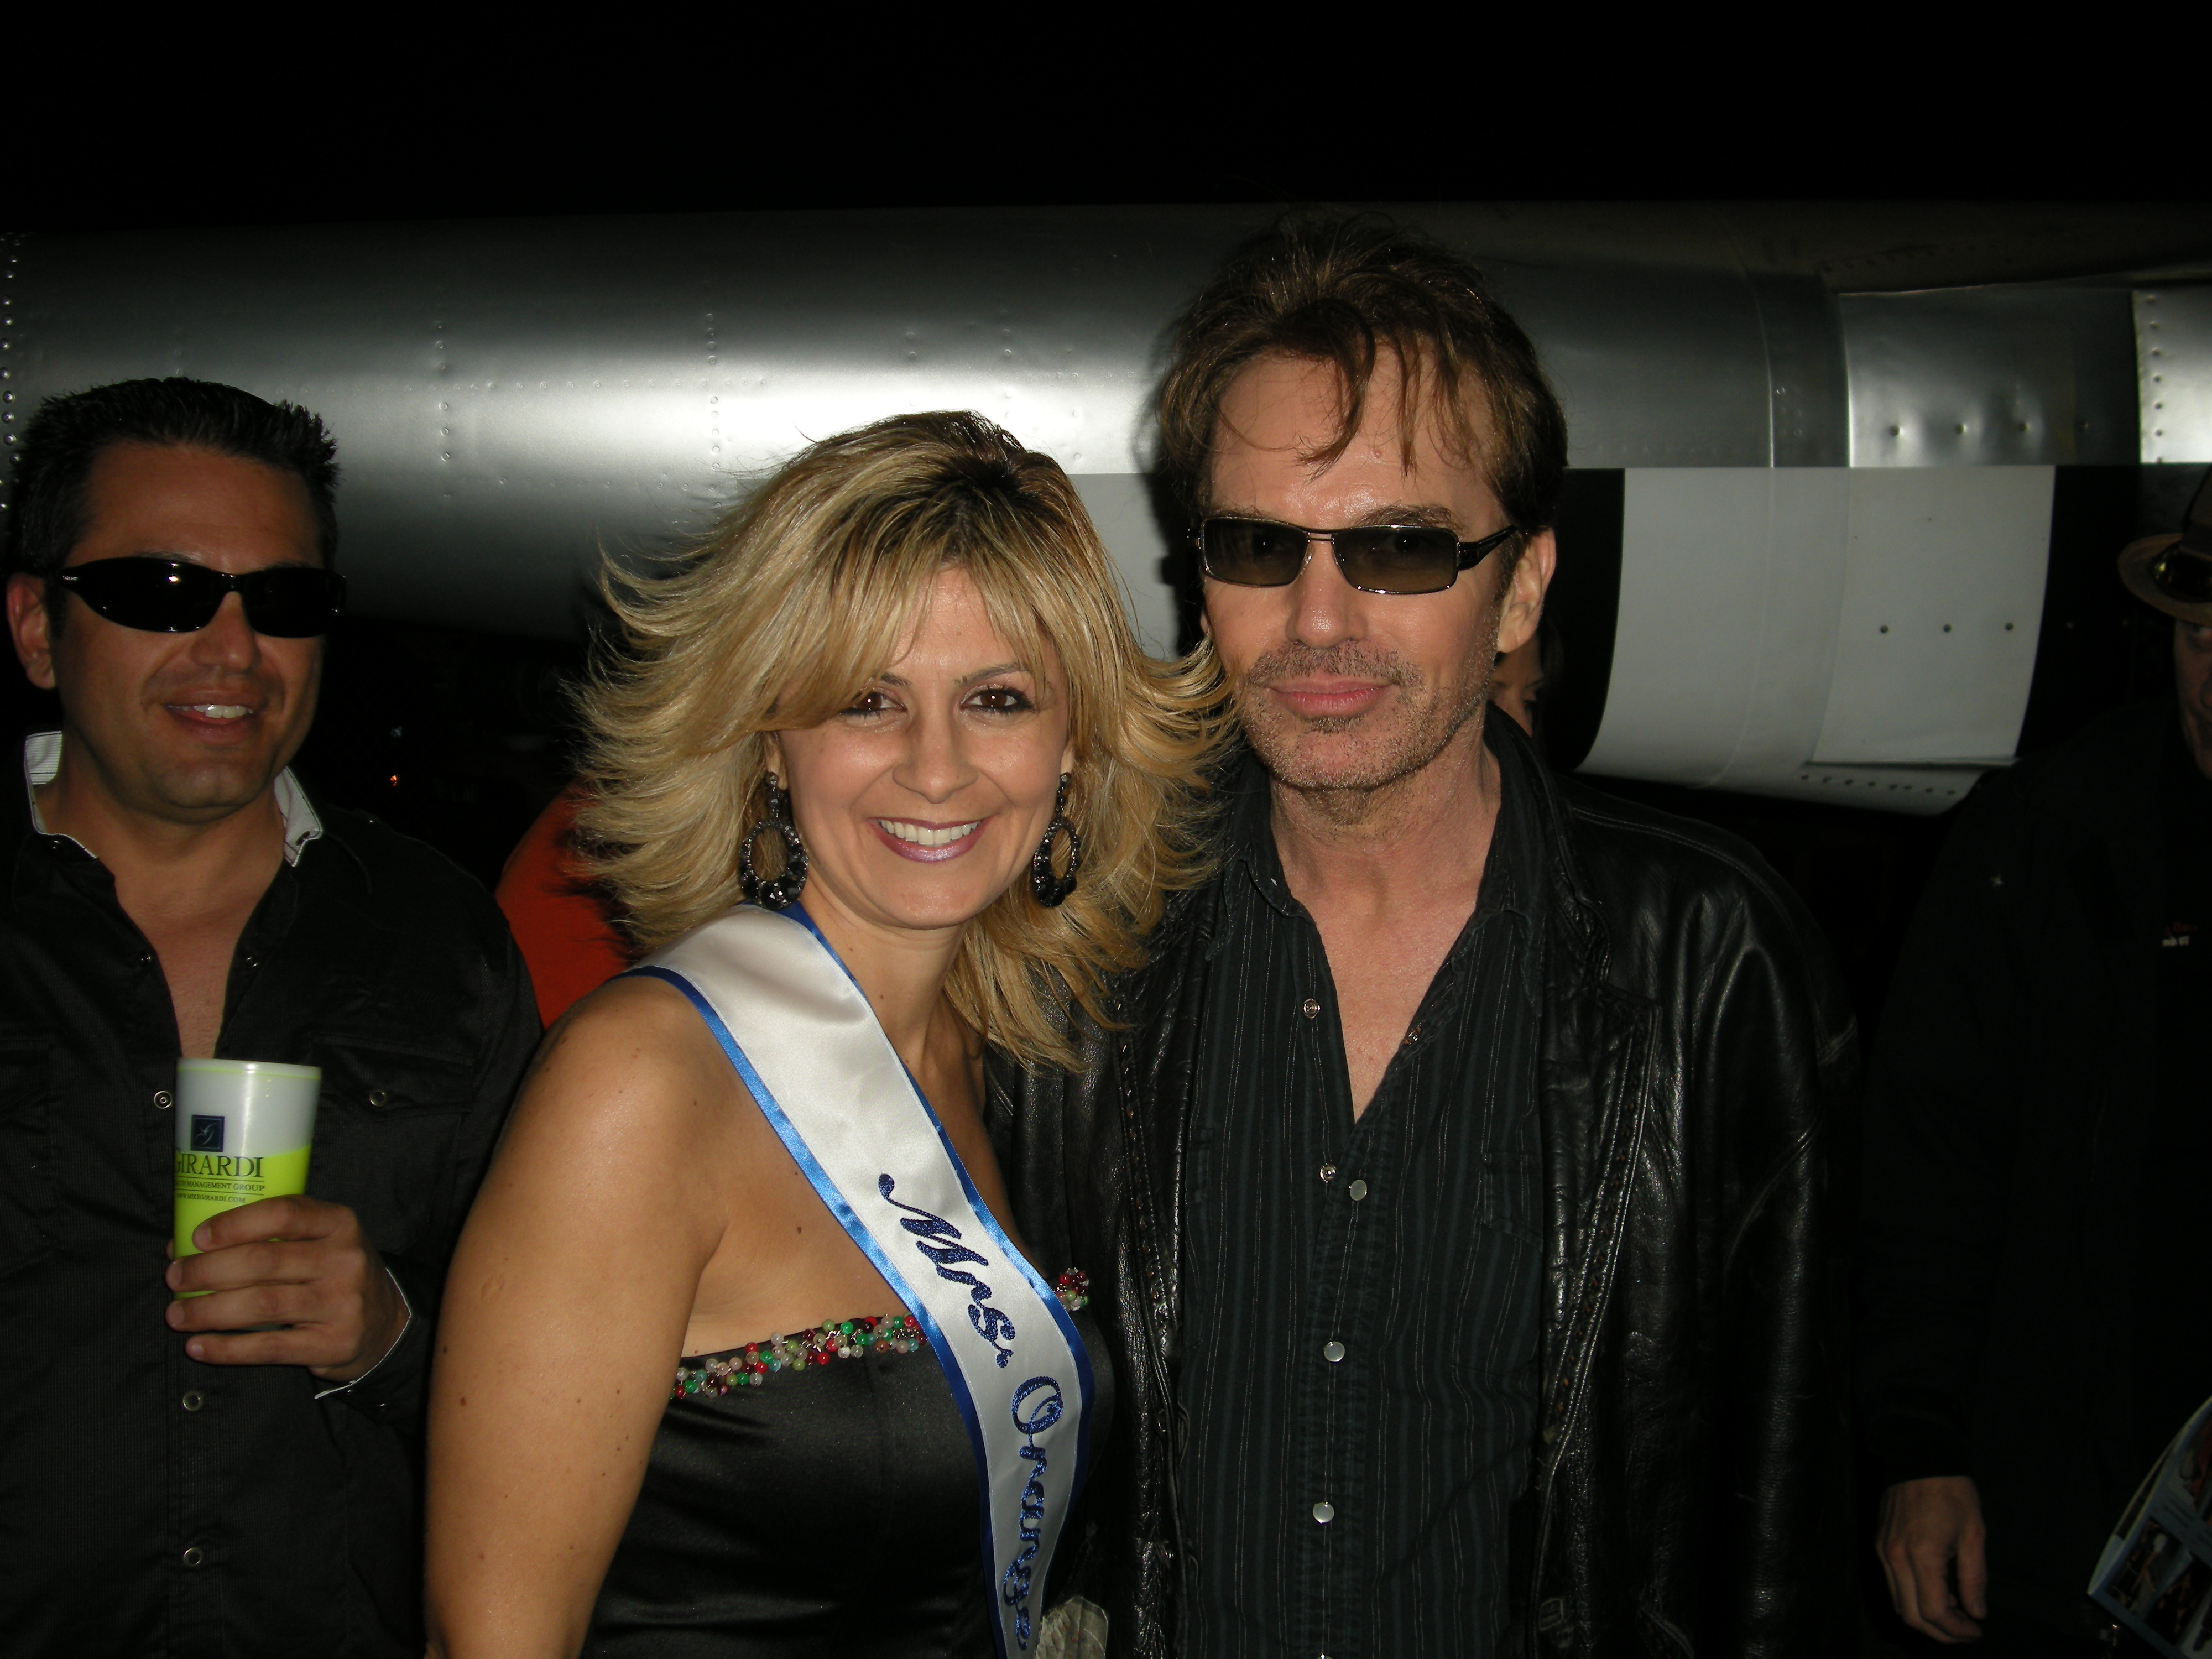 D and BillyBob Thornton at Hot To Trot.JPG